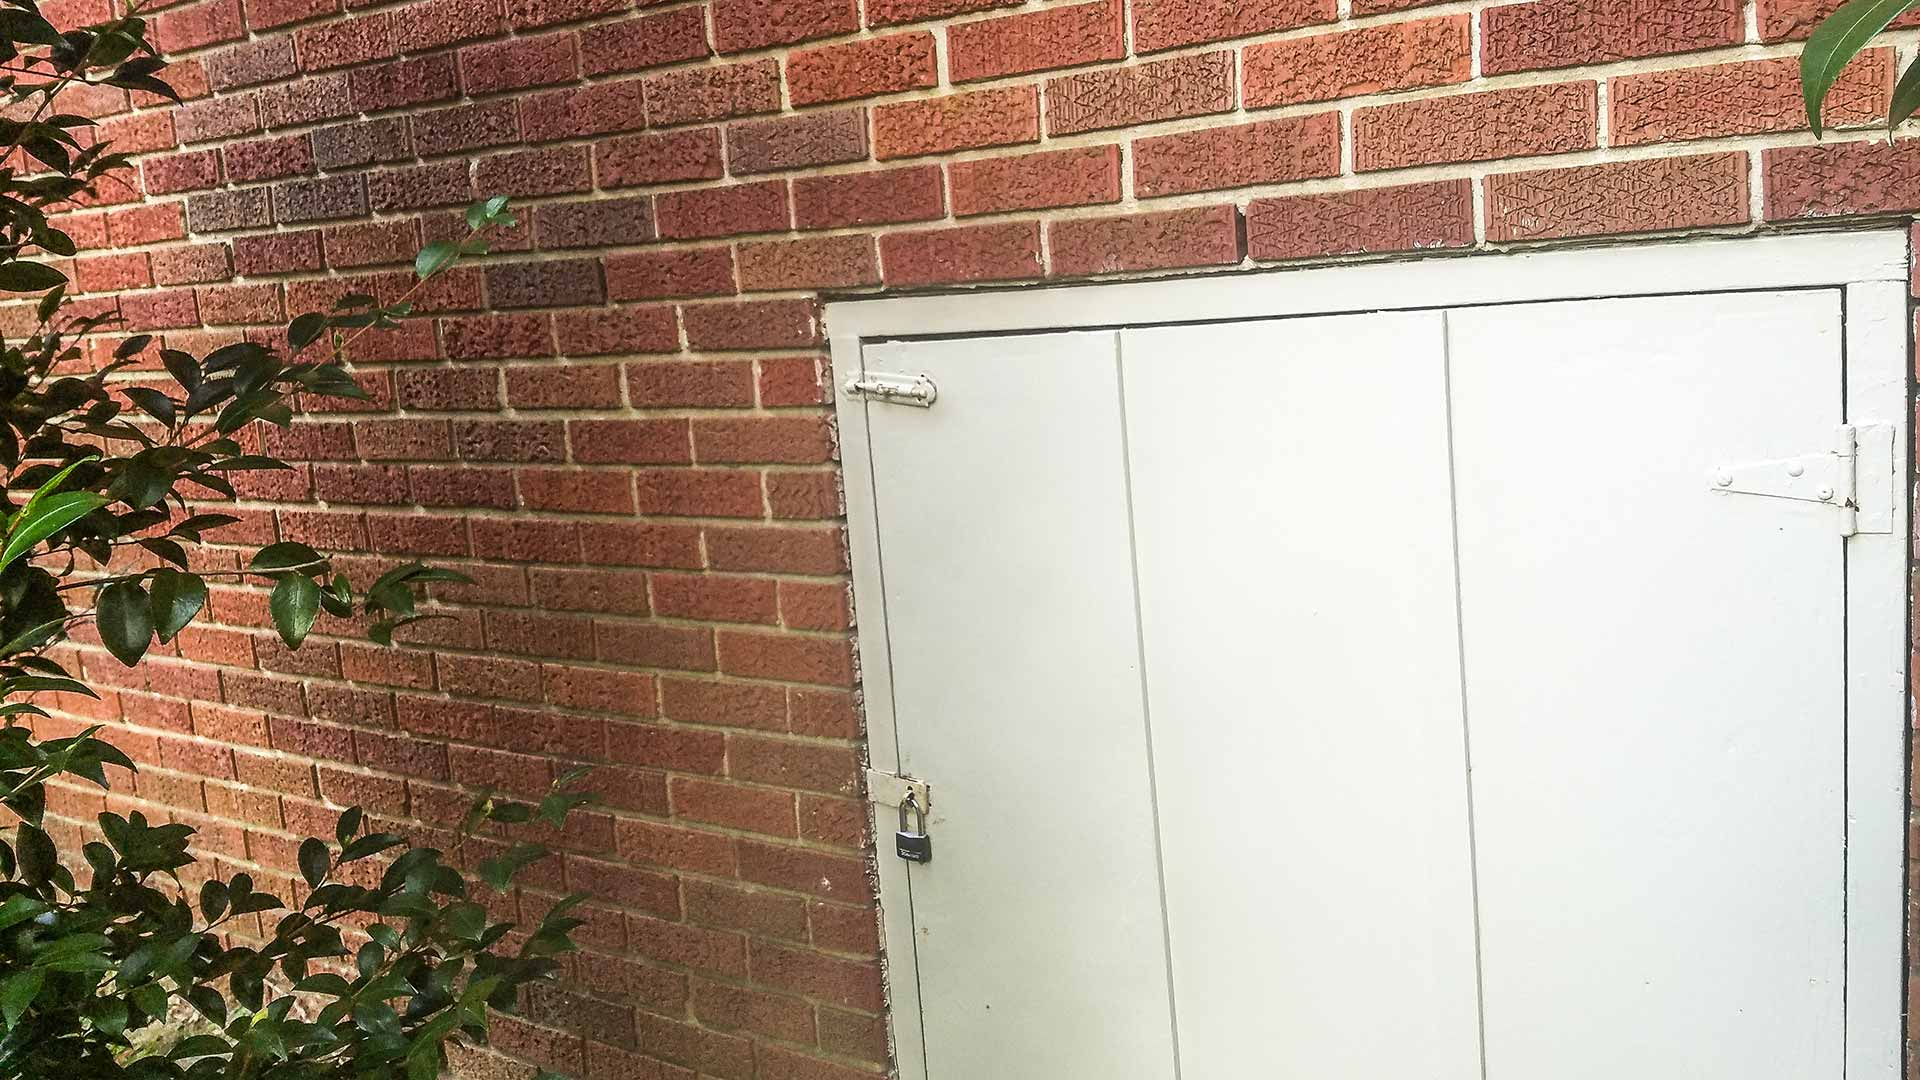 Brick home with a locked crawl space